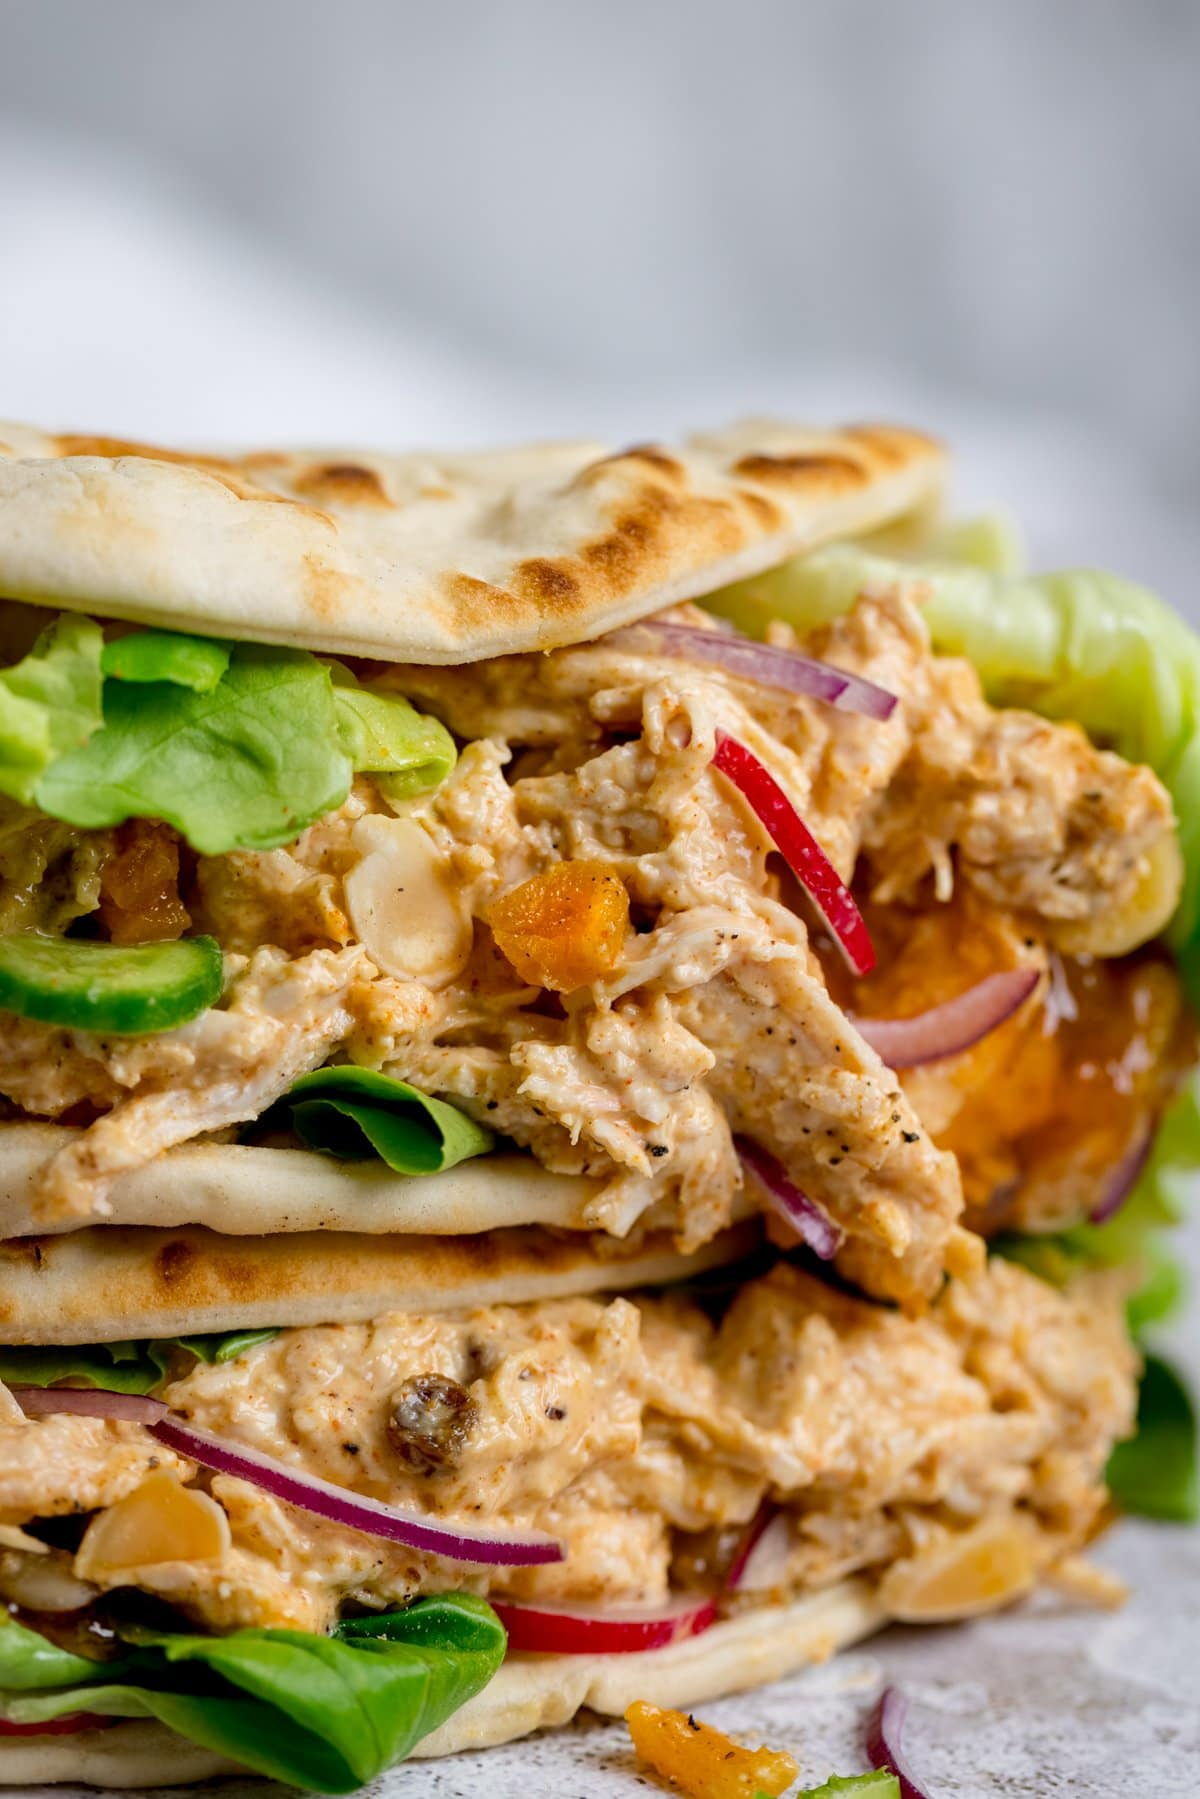 Close up image of coronation chicken and salad on a folded flatbread, stacked on another flatbread, against a light background.